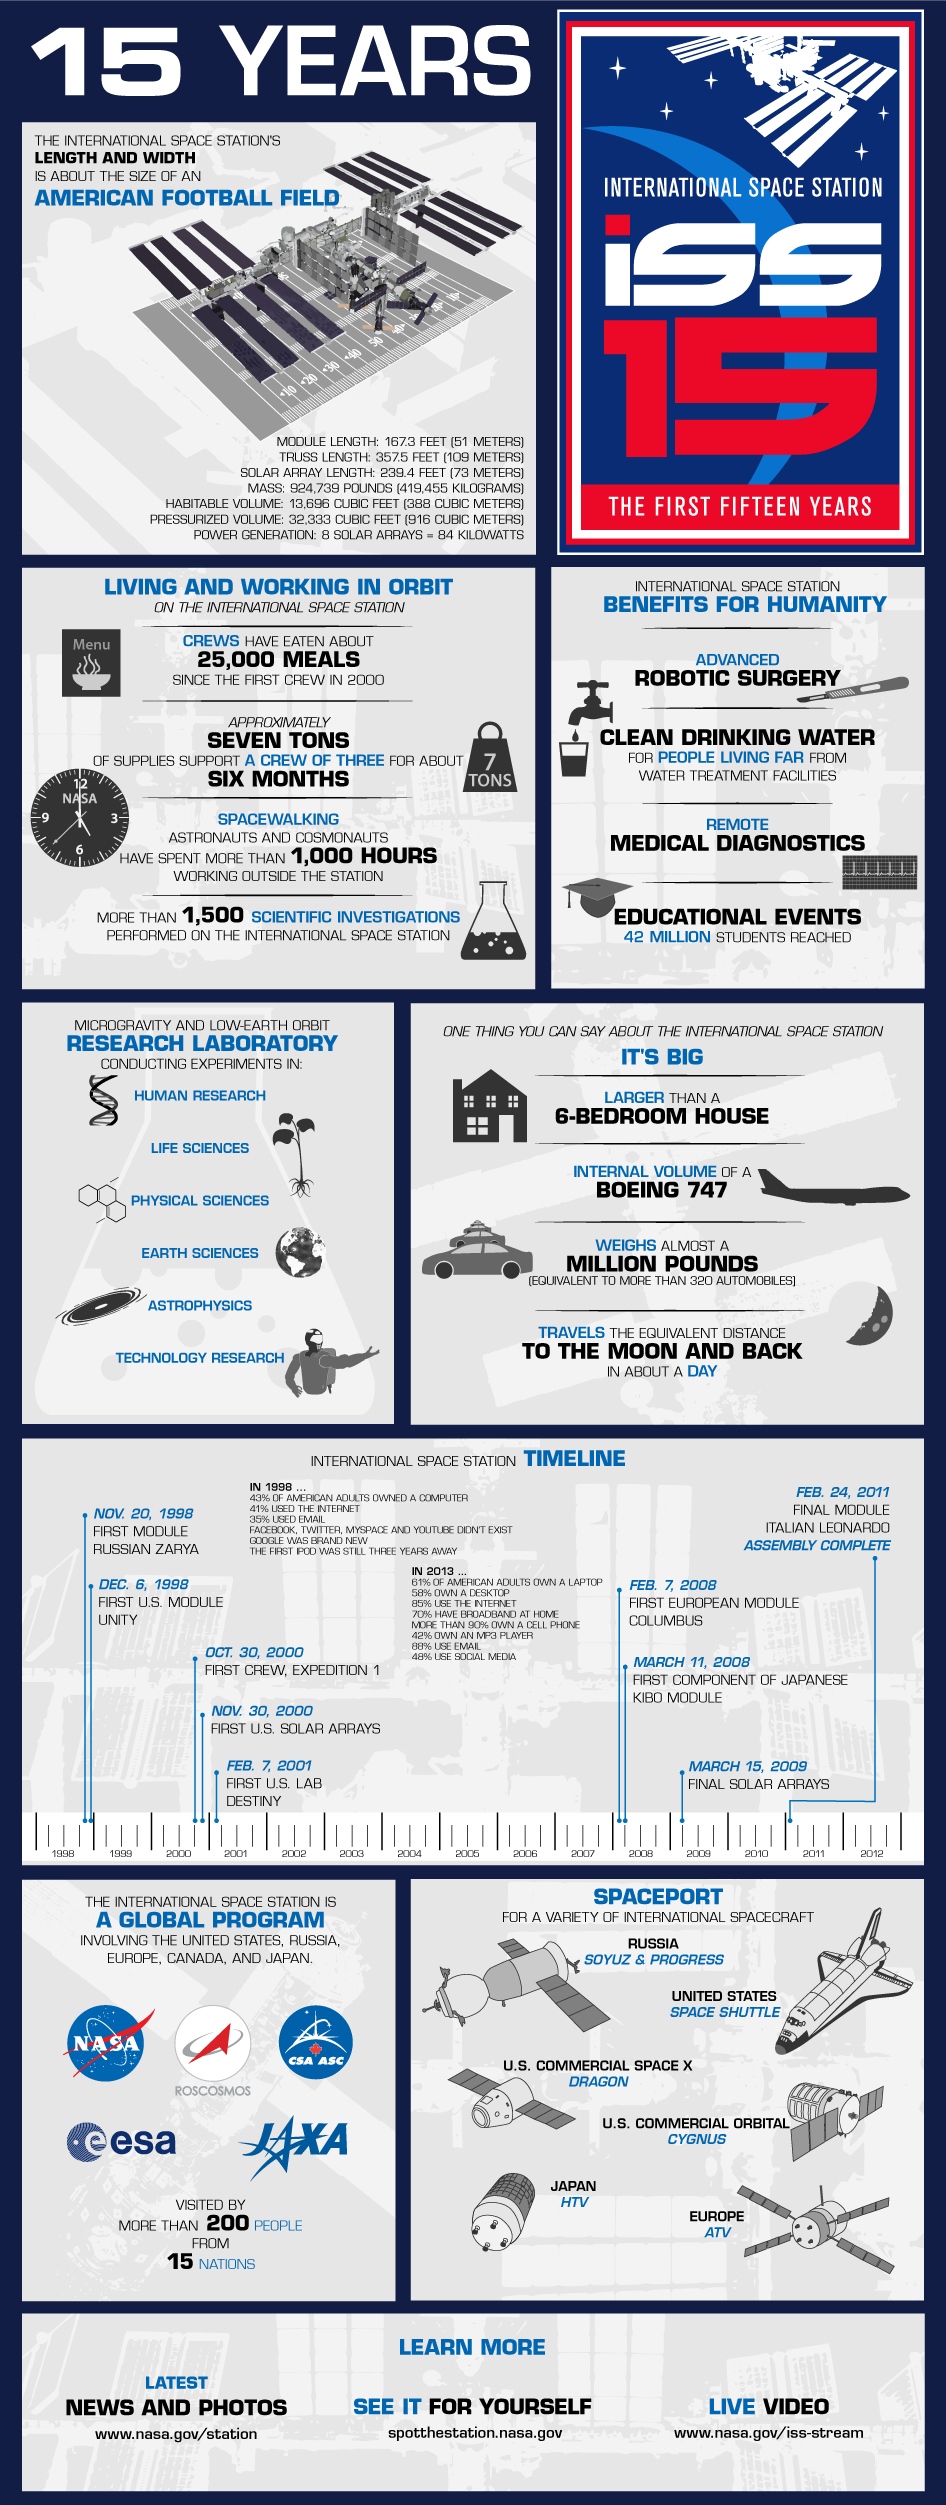 Awesome infographic about the first 15 years of the international space station. Here's to at least another awesome 15 years of actual non-stop kick-ass space research!